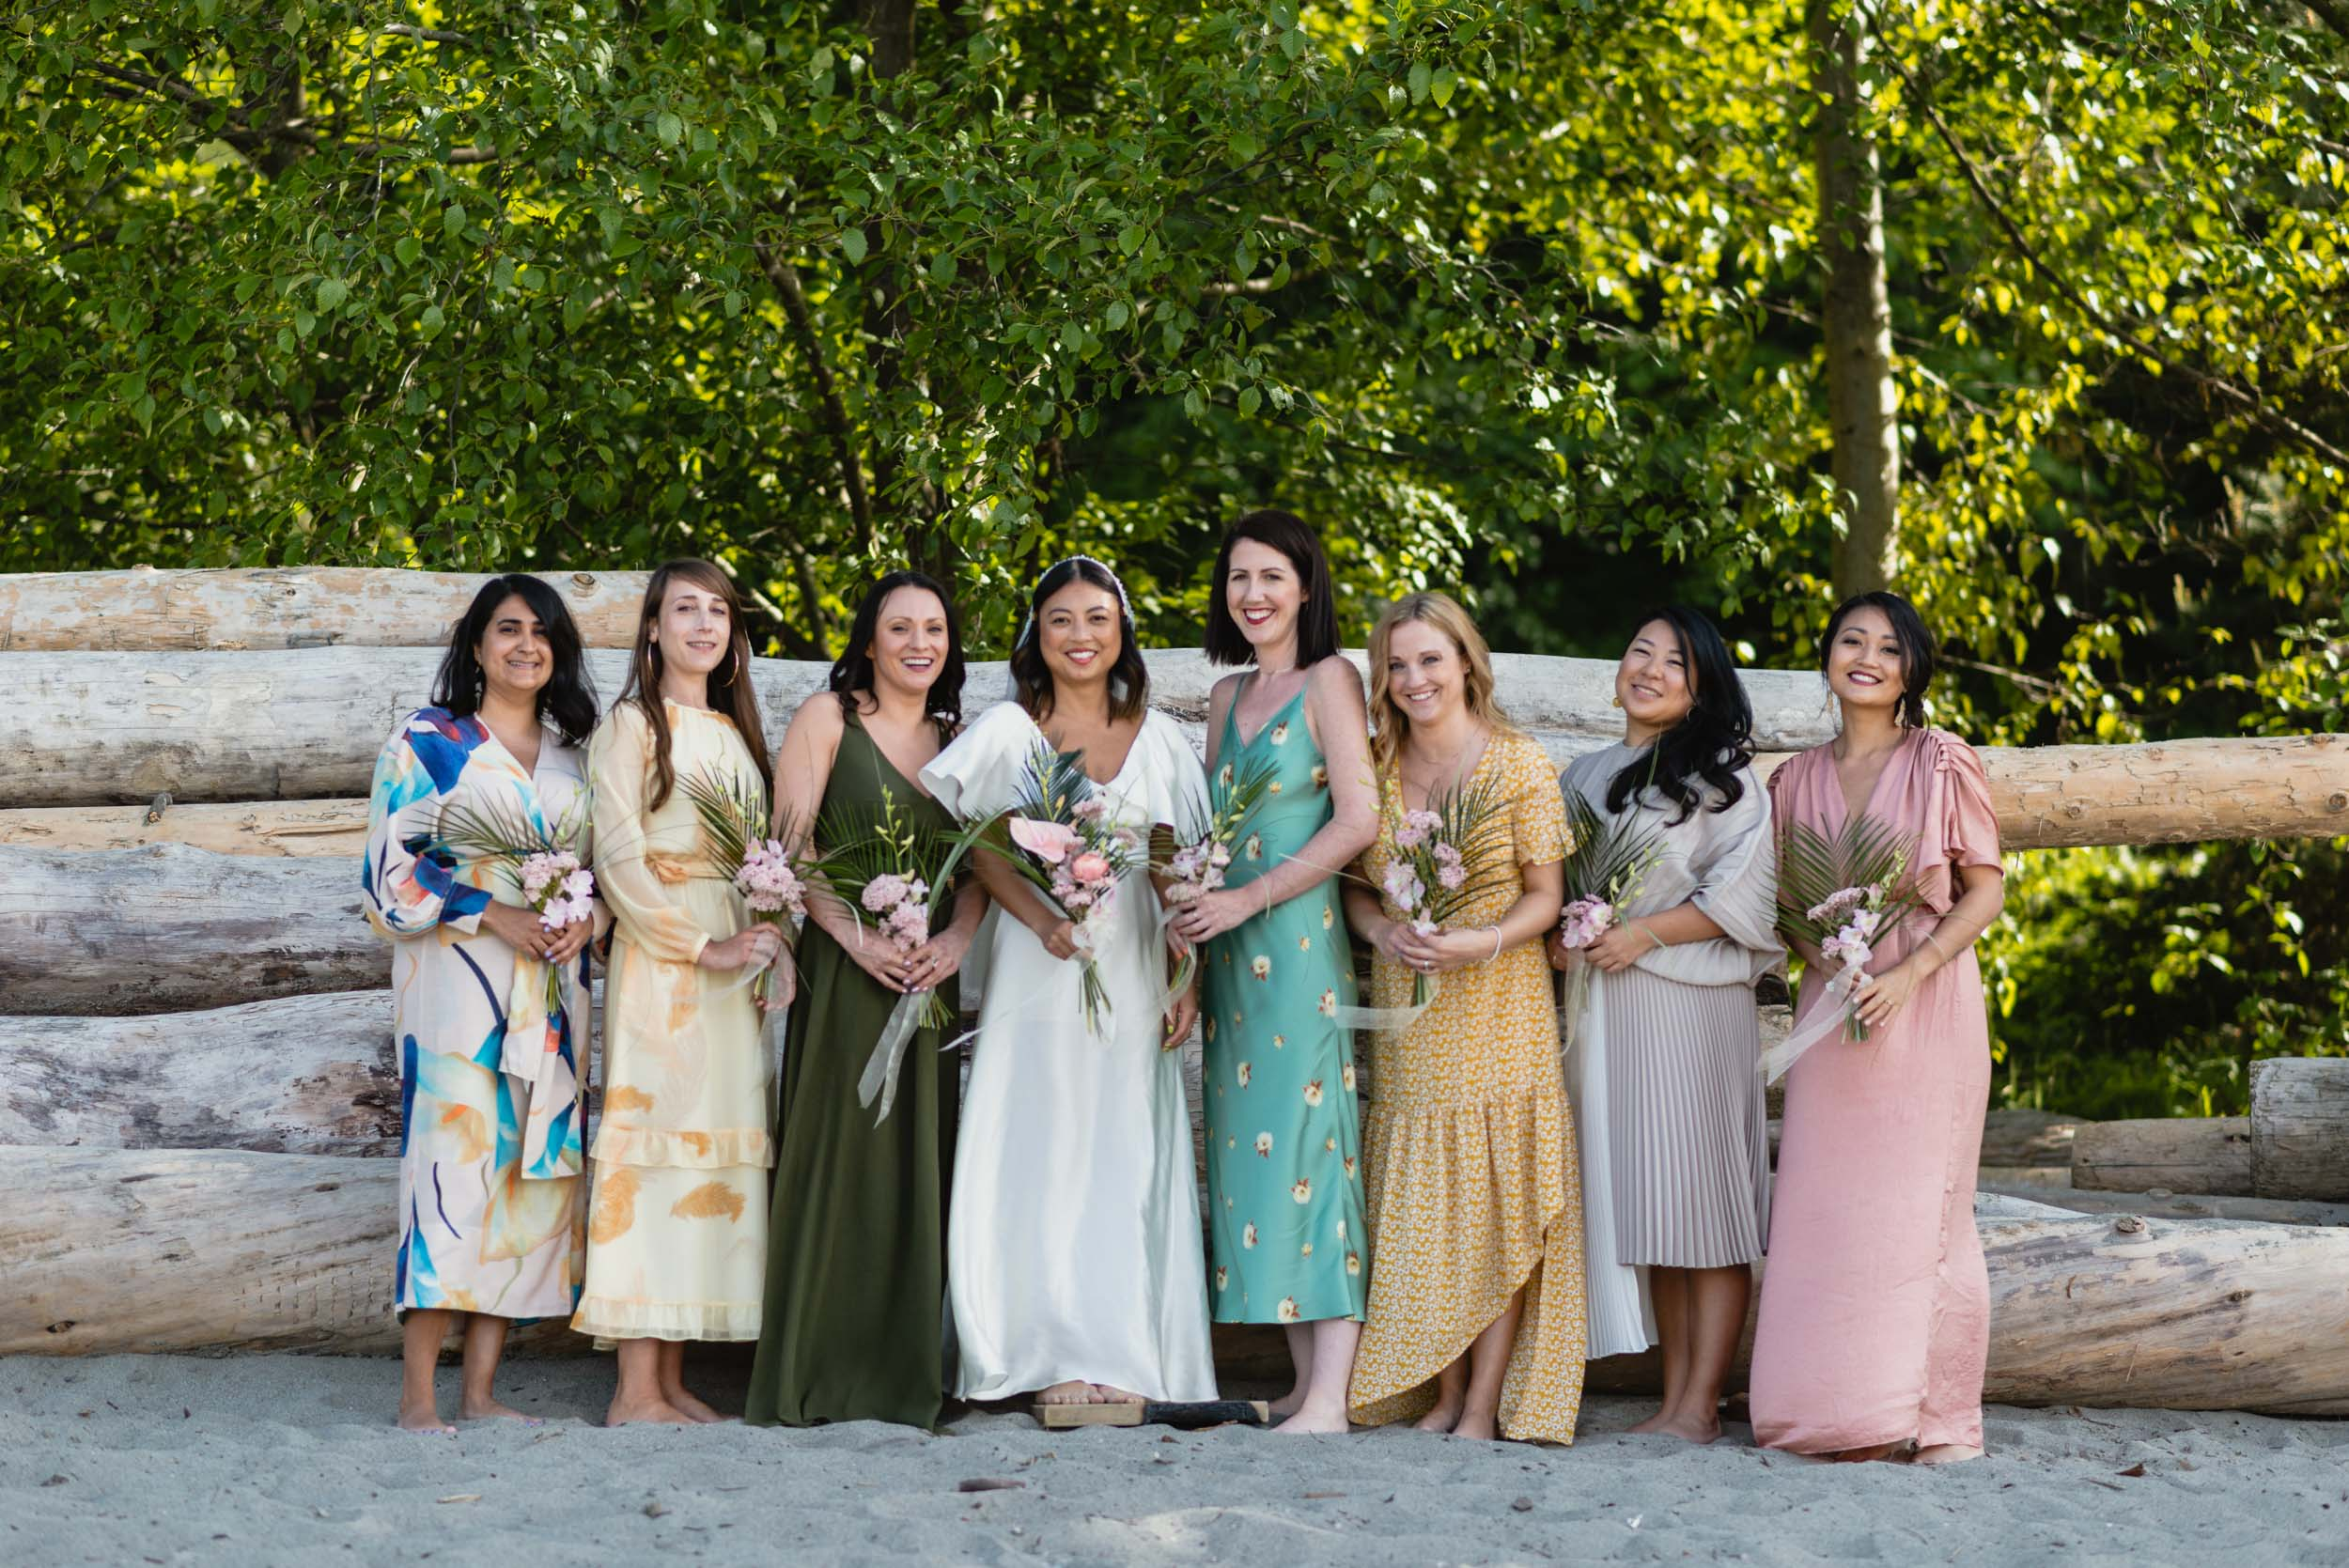 Bride and bridesmaids at beach with logs